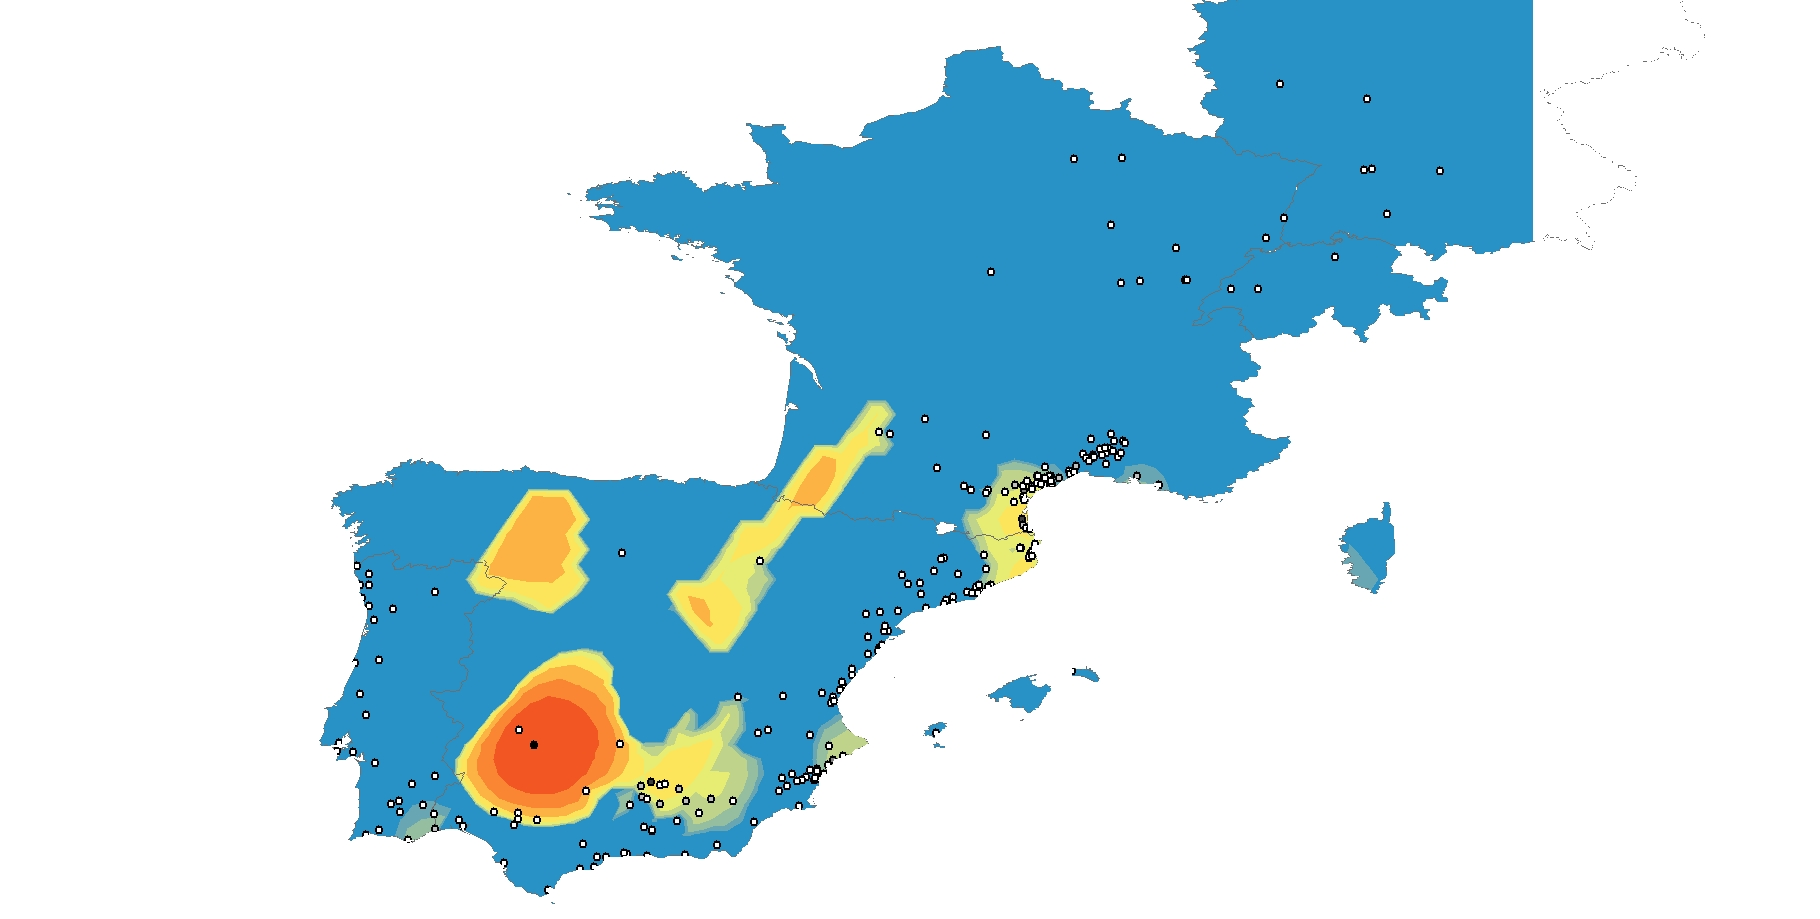 Map of Spain.